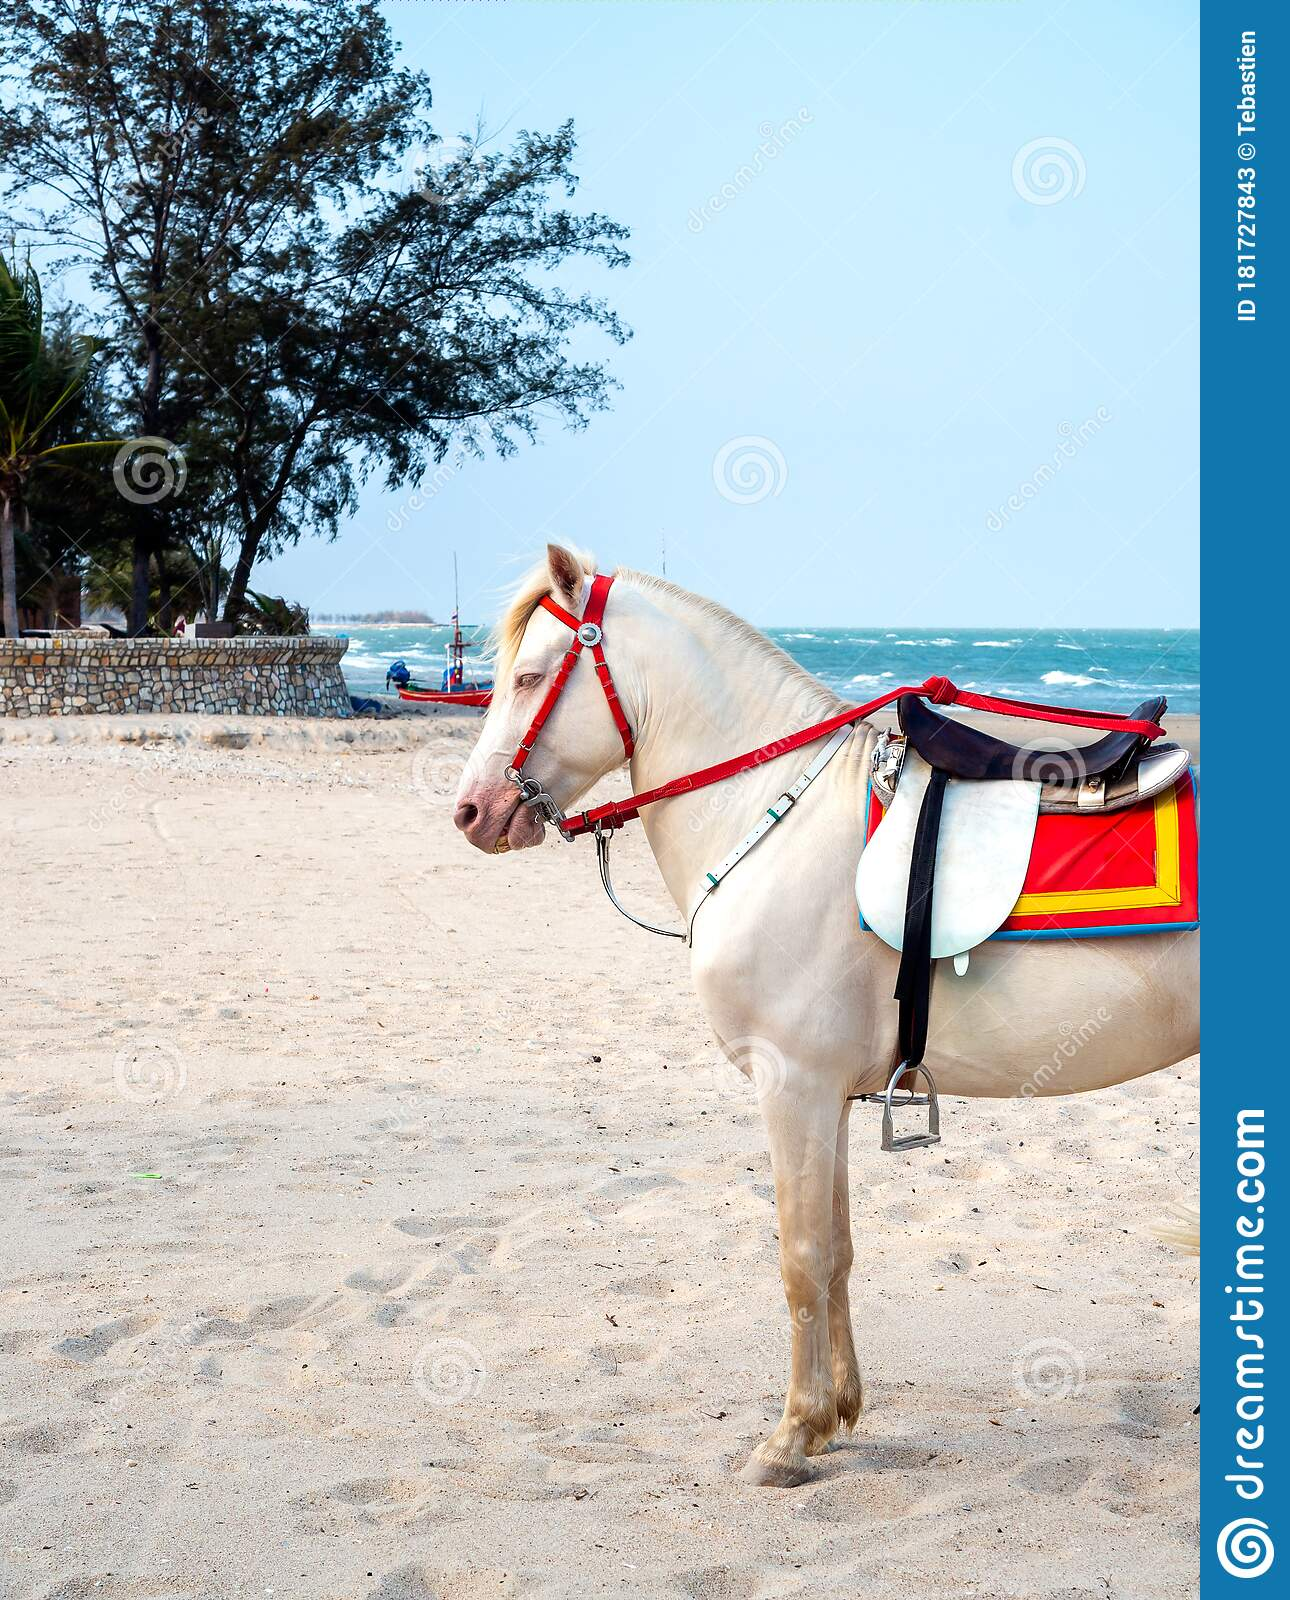 Beautiful White Horse On The Beach In Hua Hin Thailand Stock Image Image Of Obedient Huahin 181727843